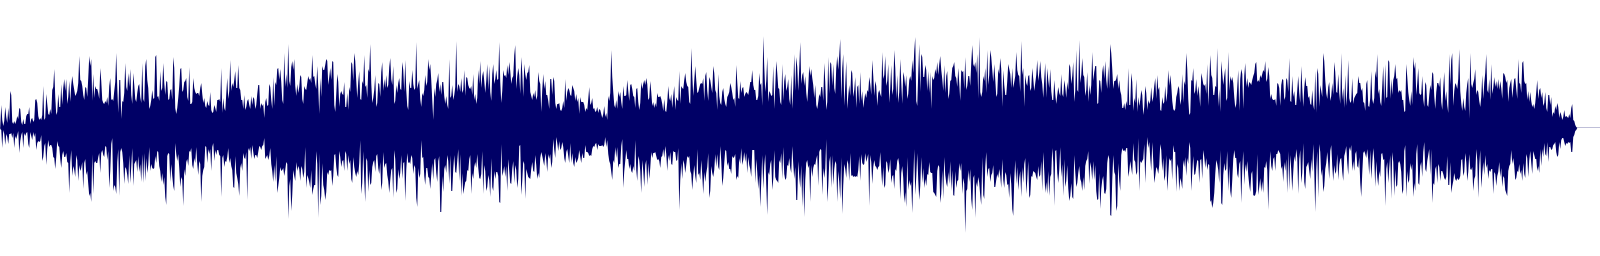 waveform of track #137045